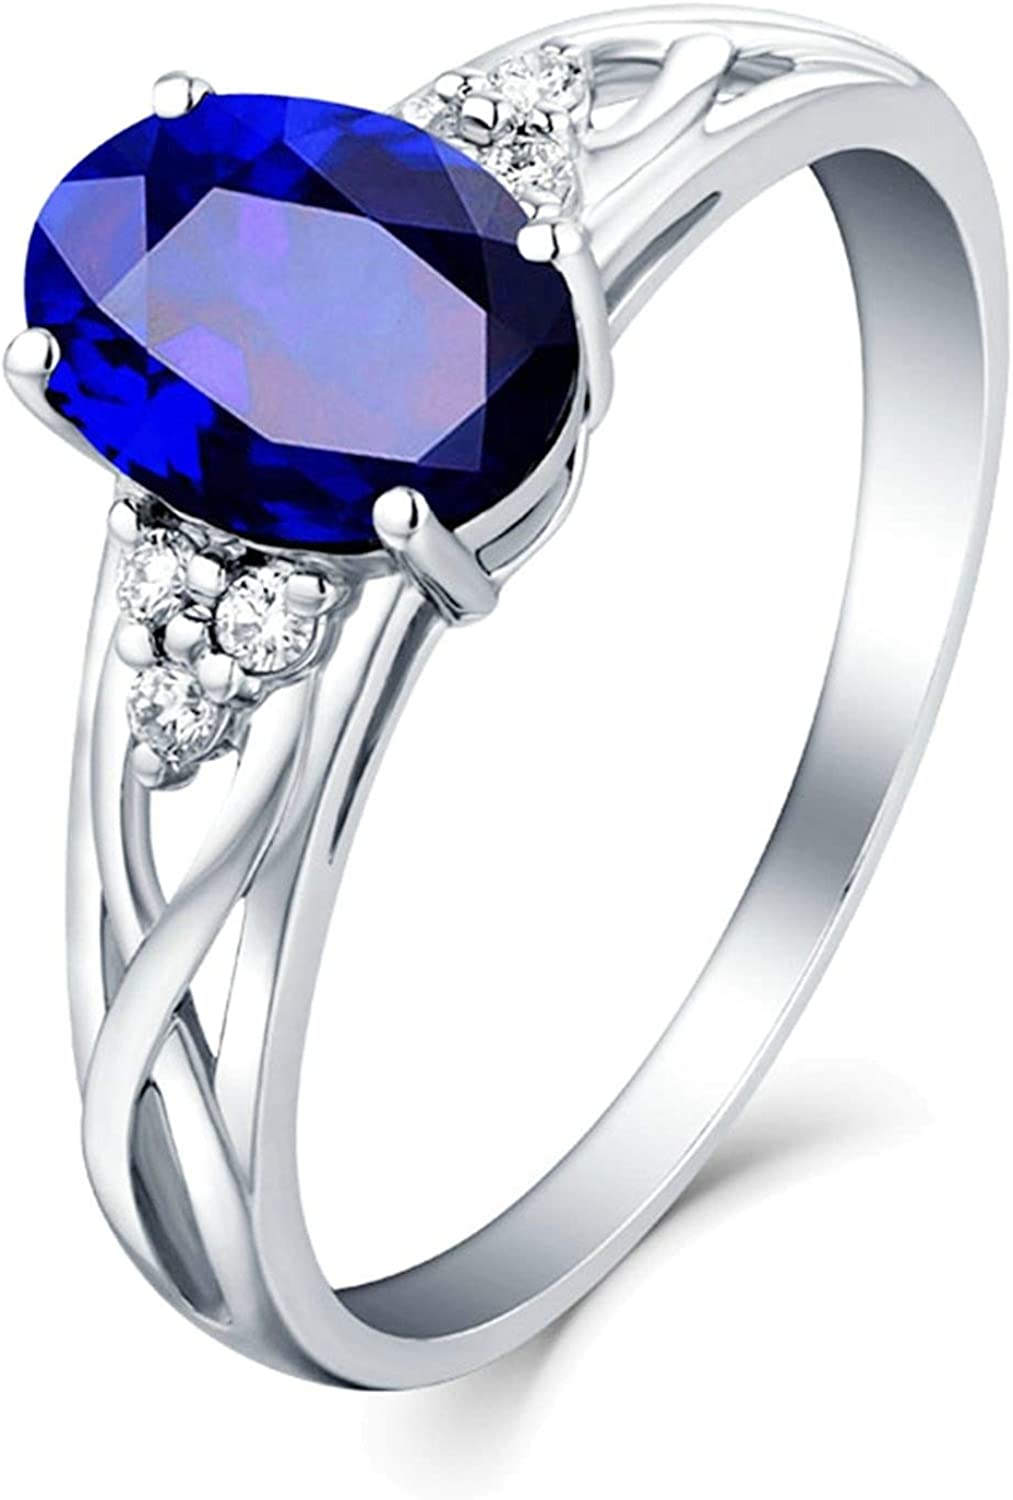 Epinki Women 18K Today's only White Gold 4 St Columbus Mall Sapphire Oval Claws 0.41ct Ring